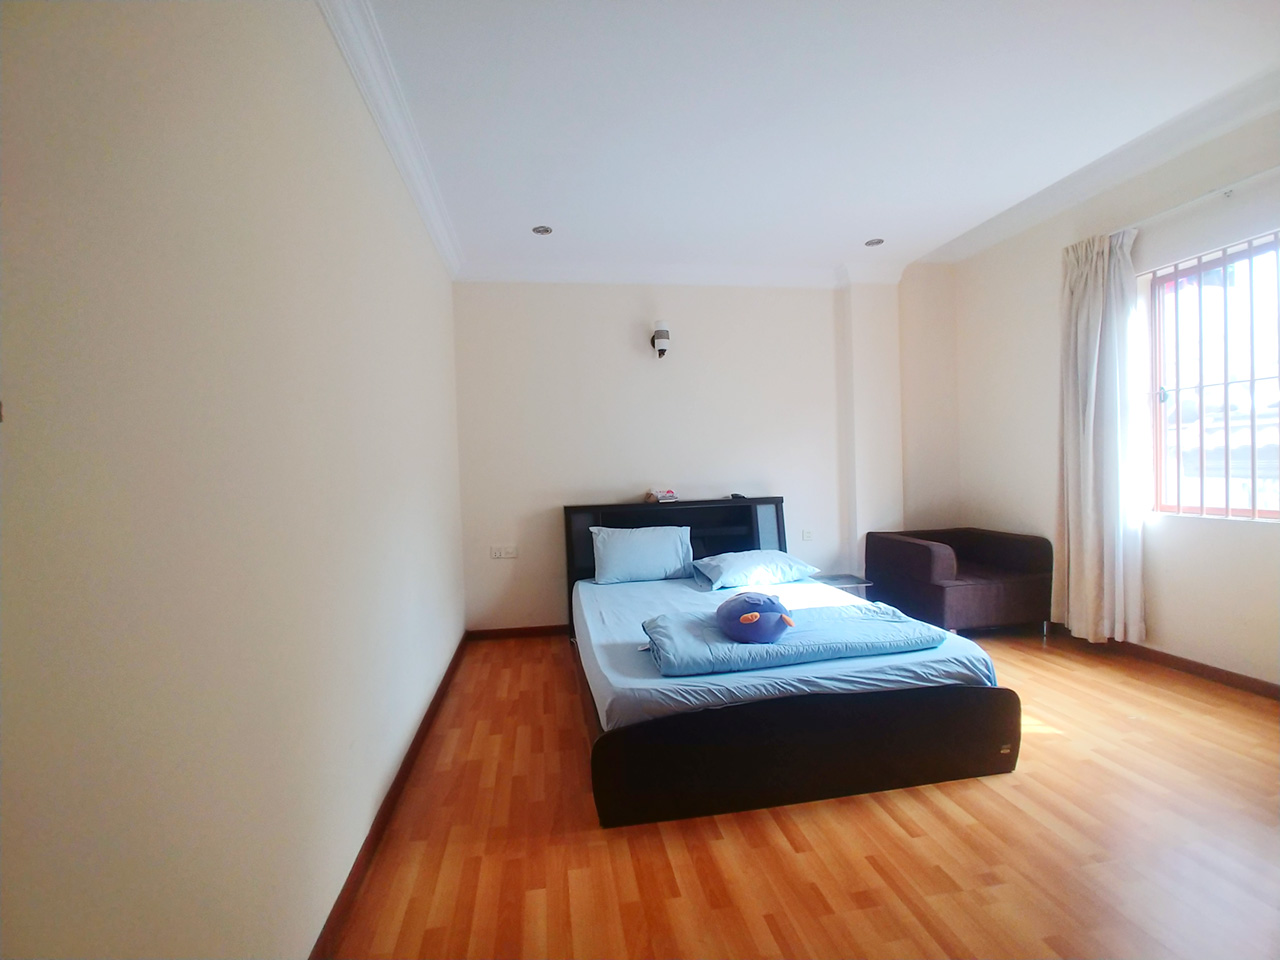 32 Rooms whole apartment for rent @ BKK area